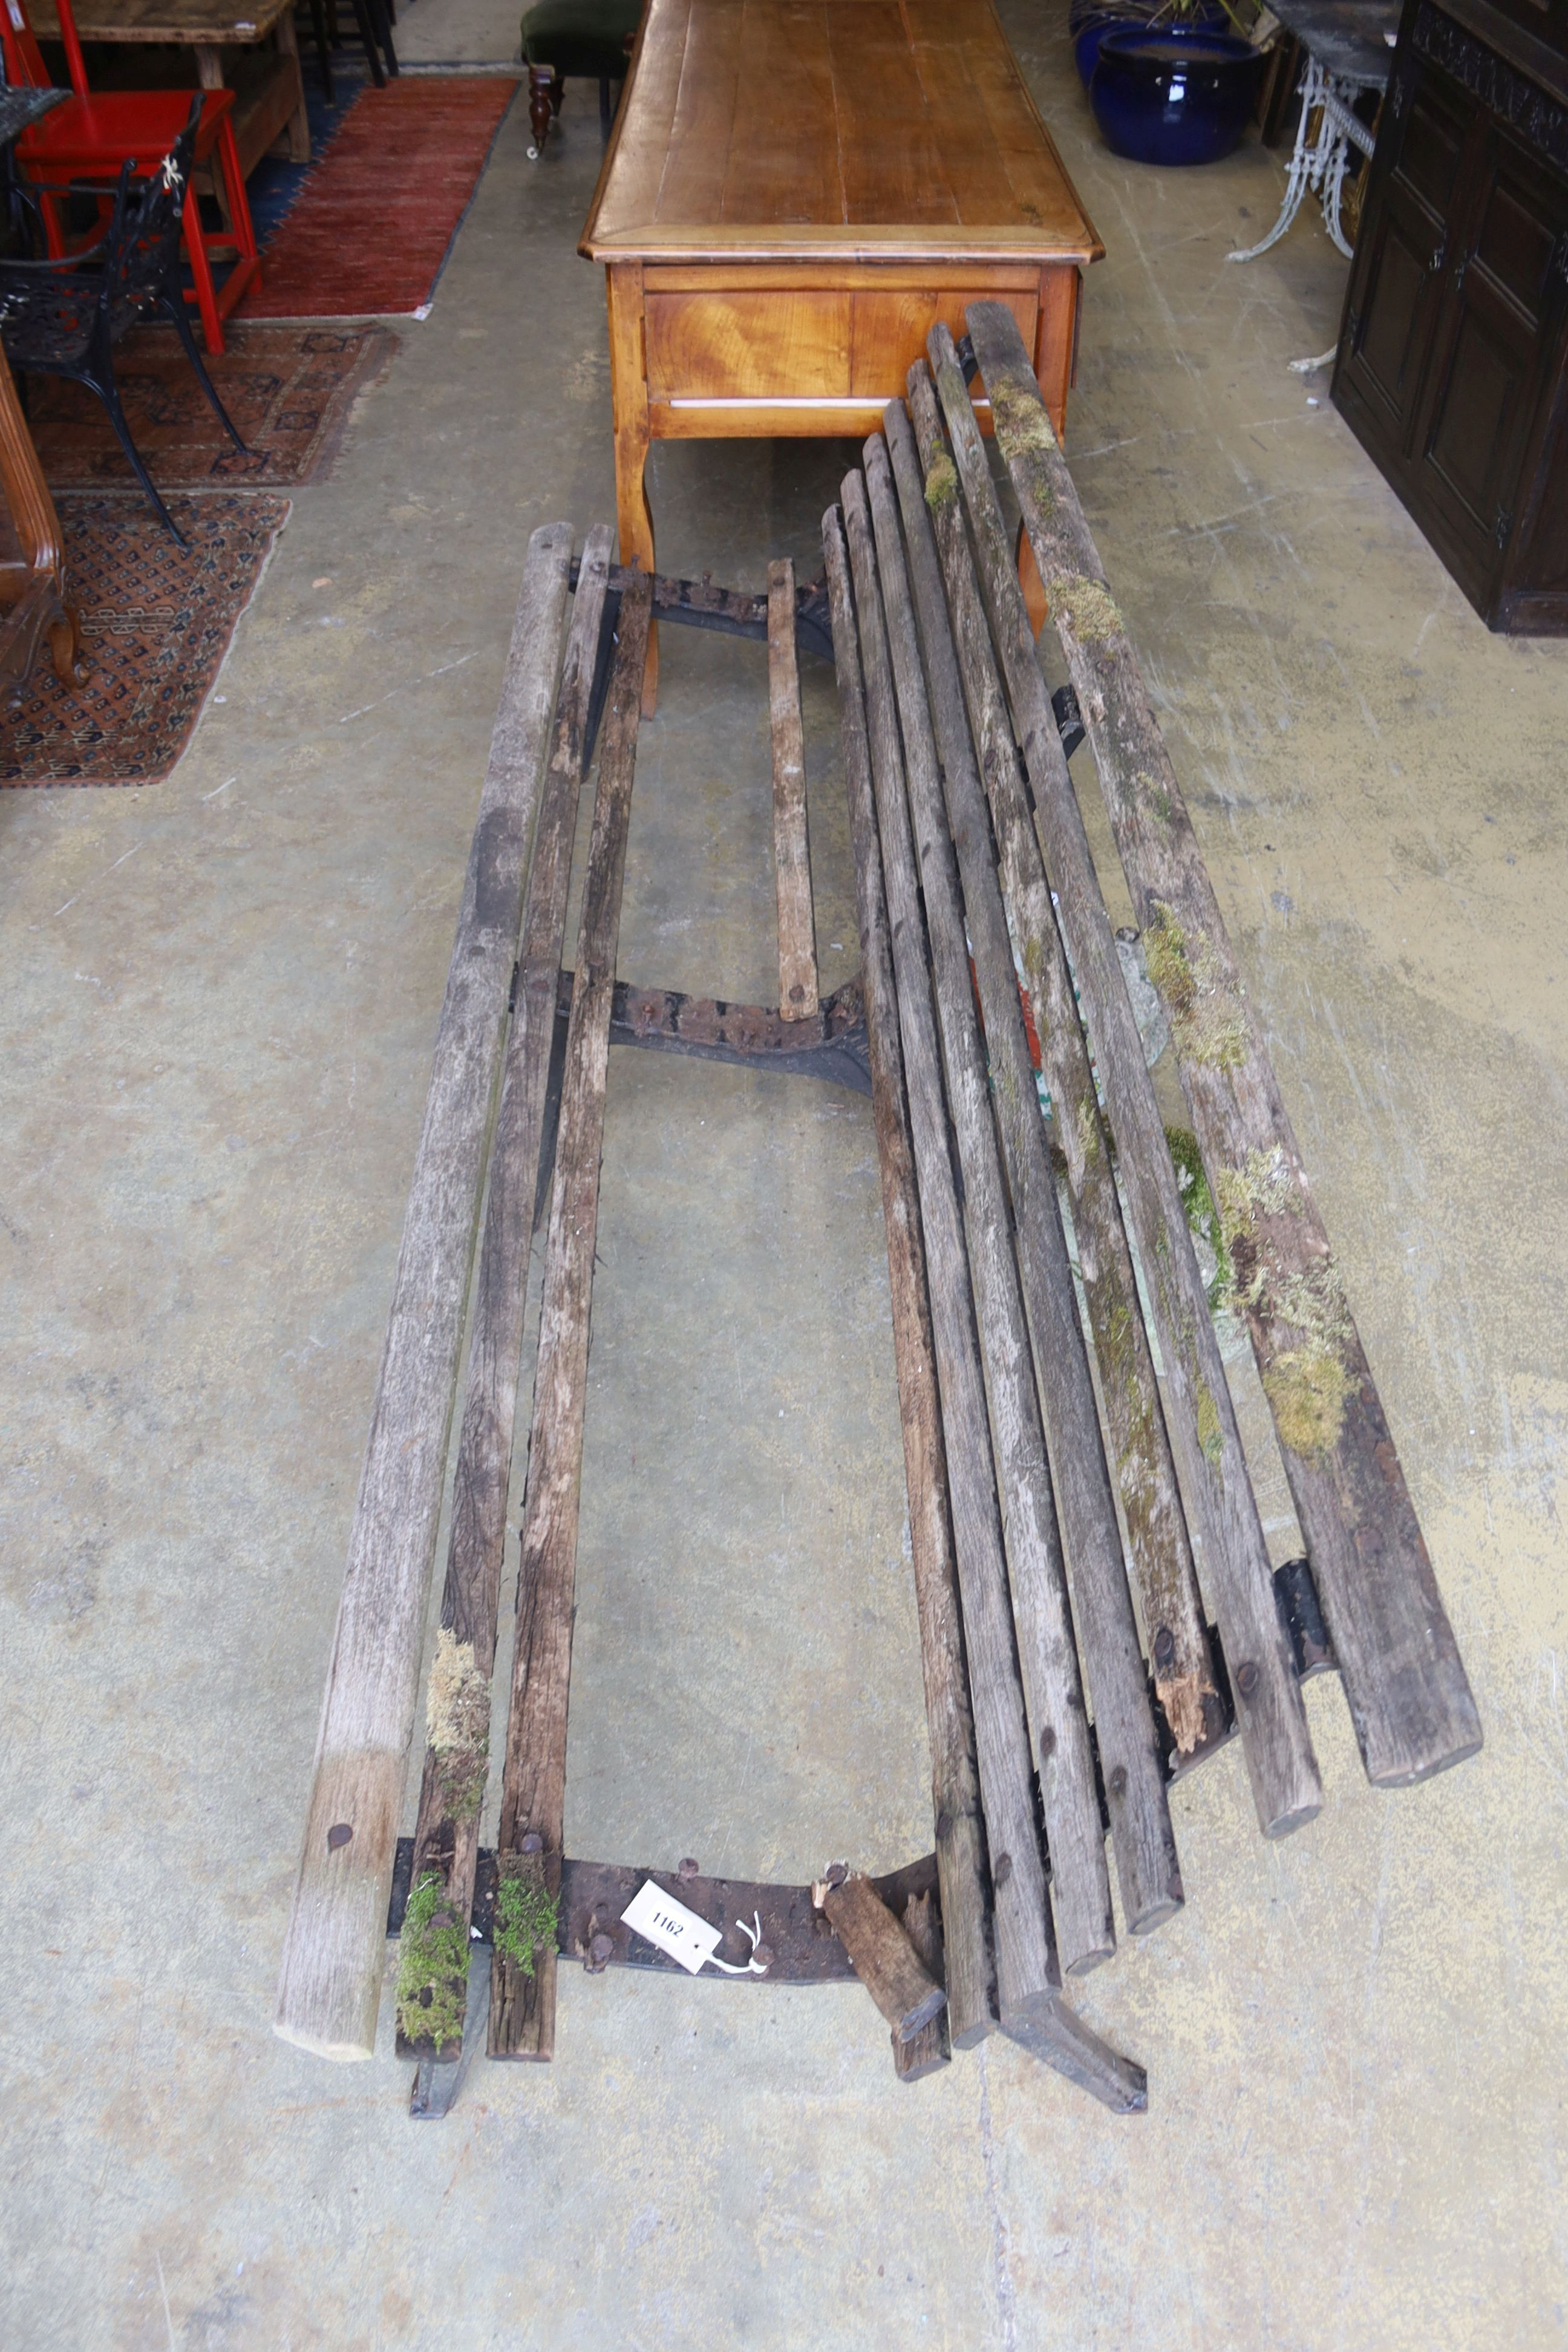 A slatted wood garden bench marked L M Furniture (in need of repair), length 244cm, depth 70cm, - Image 2 of 2